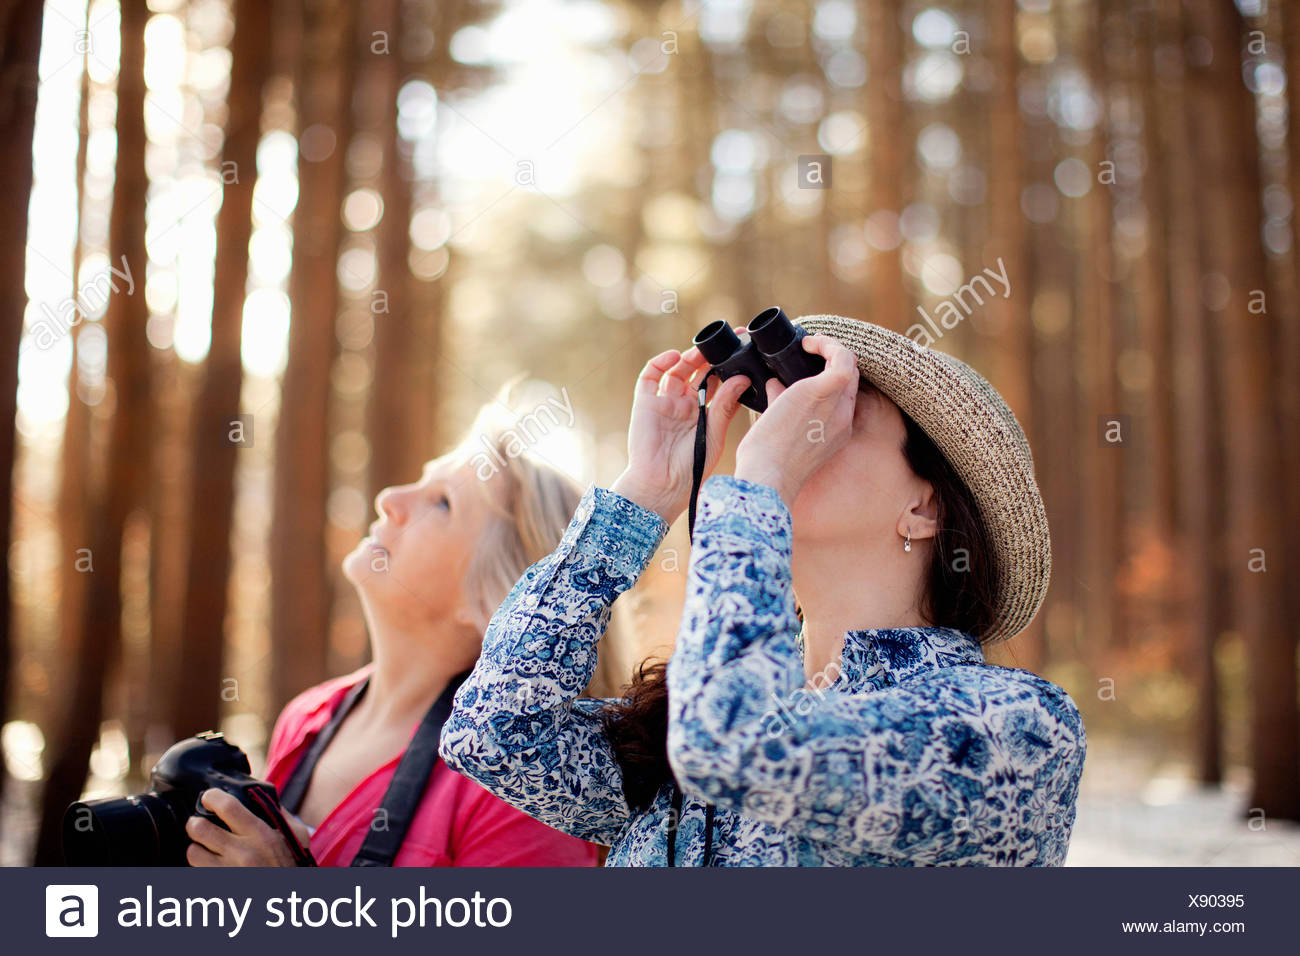 Two mature women bird watching in forest - Stock Image